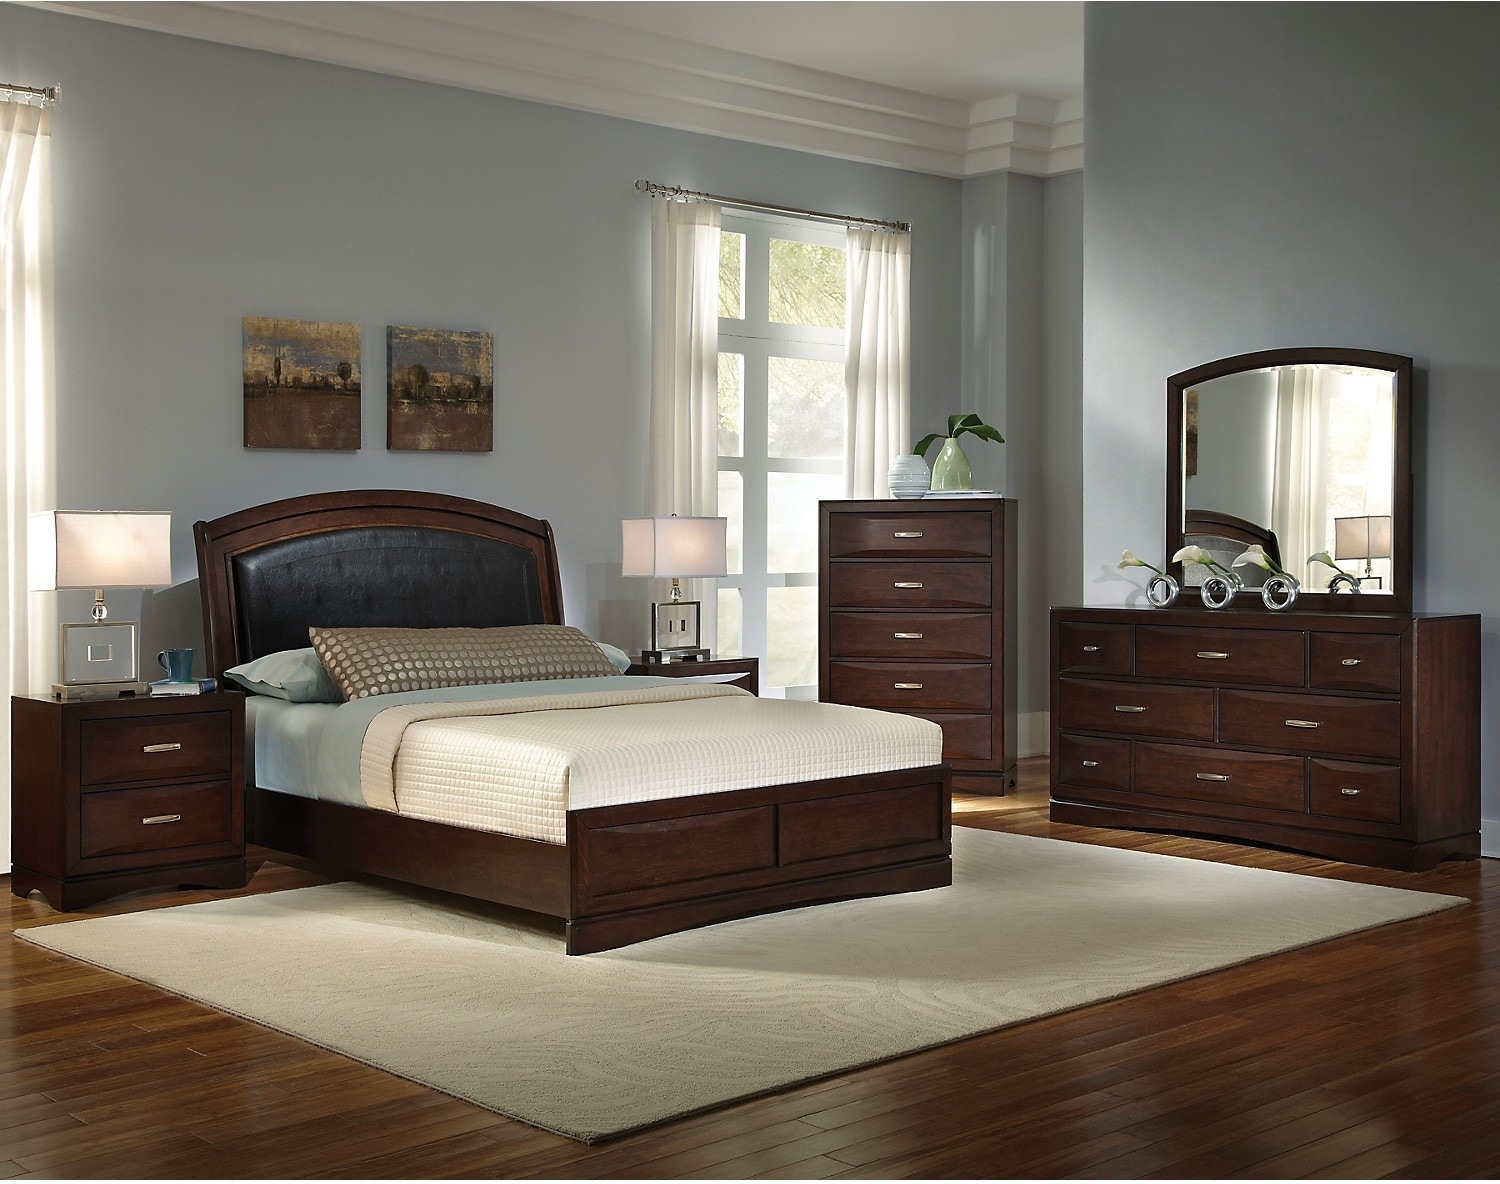 Beautiful Bedroom Sets Beverly 8 Piece King Bedroom Set The Brick